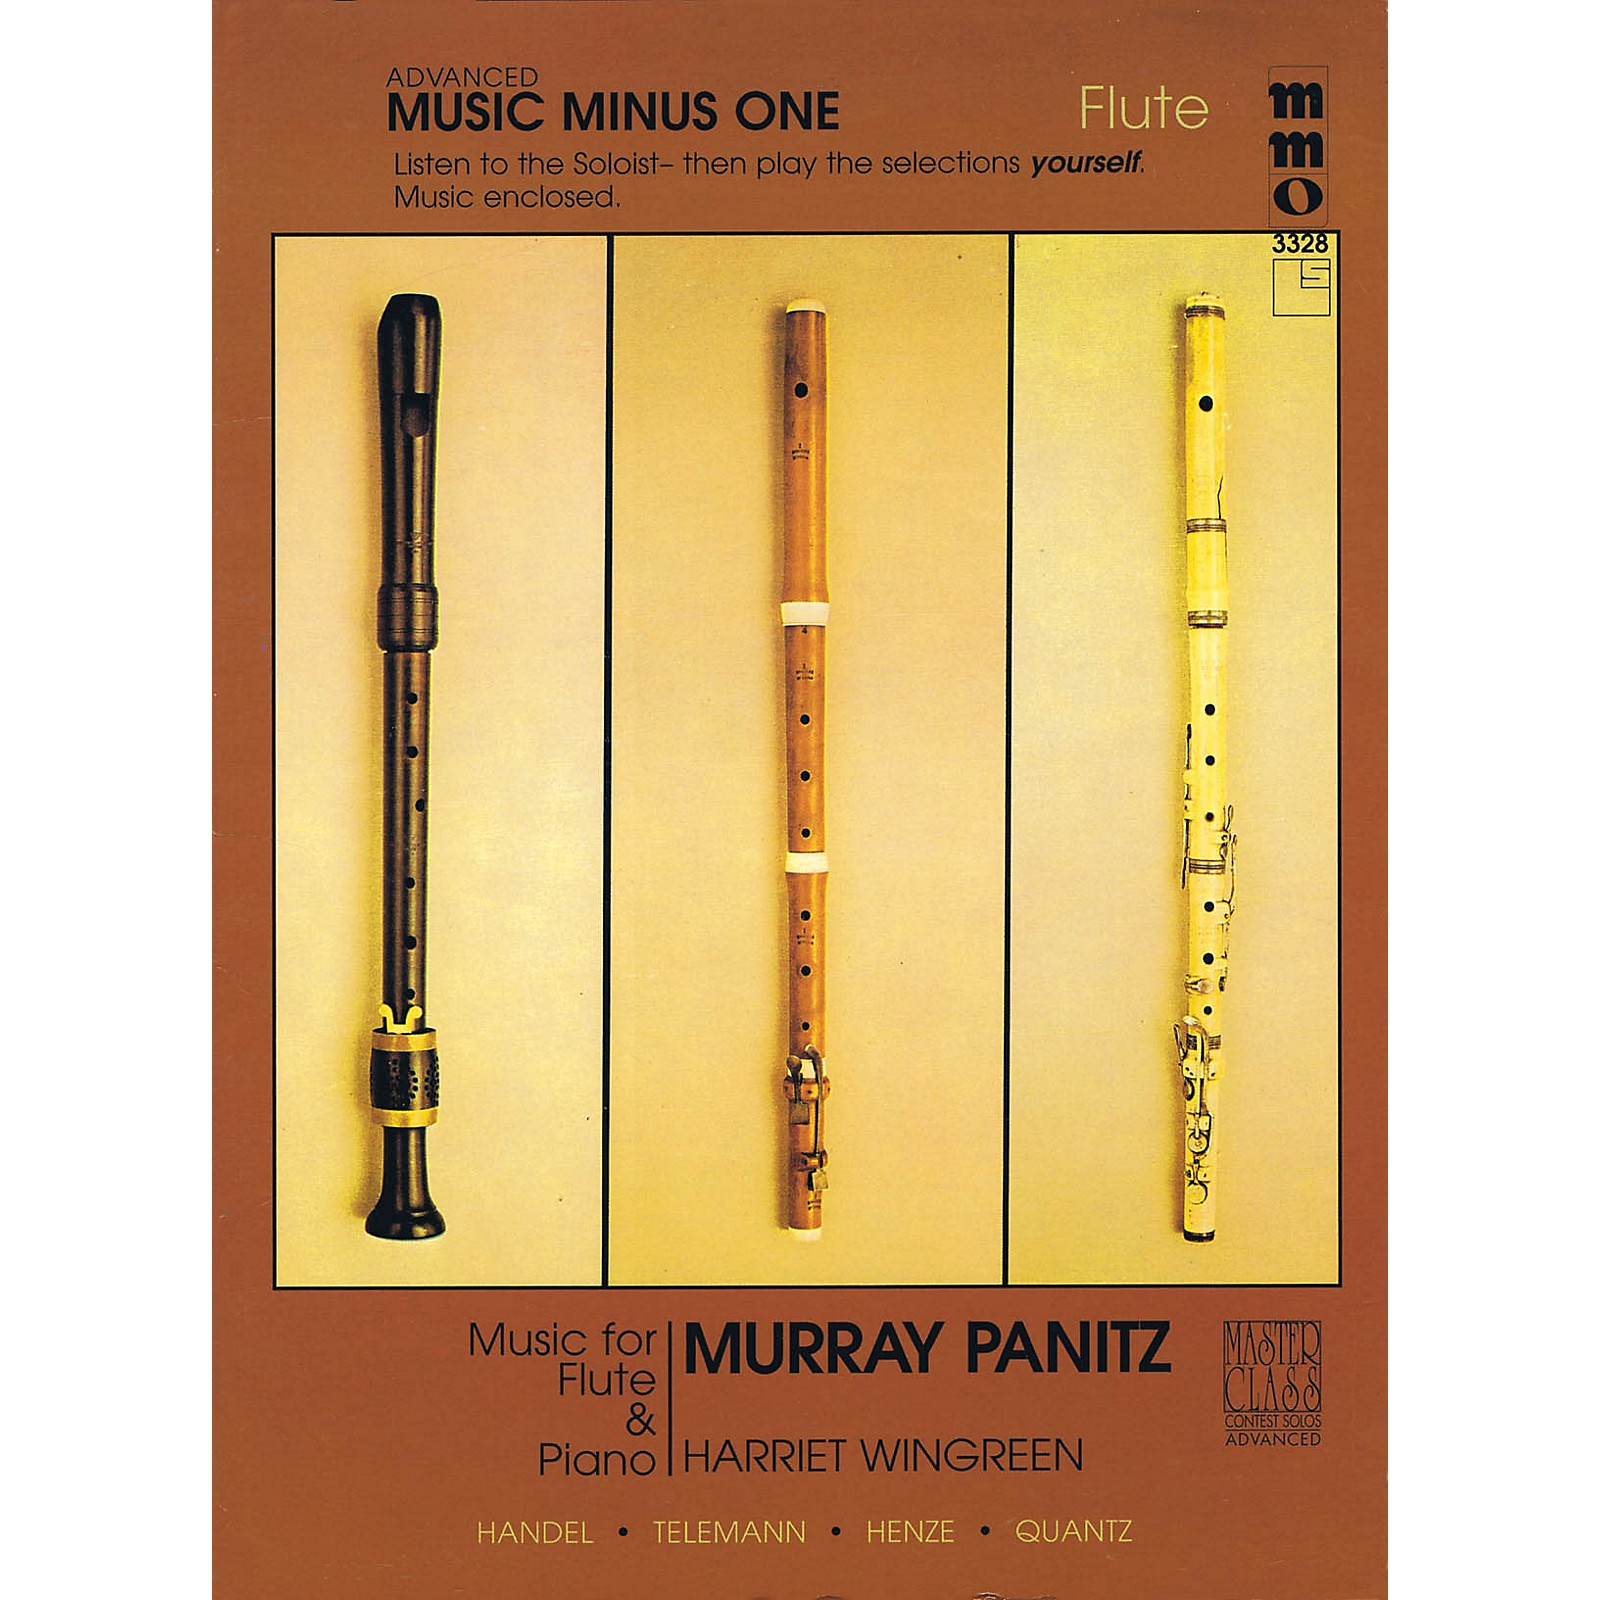 Music Minus One Advanced Flute Solos - Volume 3 Music Minus One Series Softcover with CD Performed by Murray Panitz